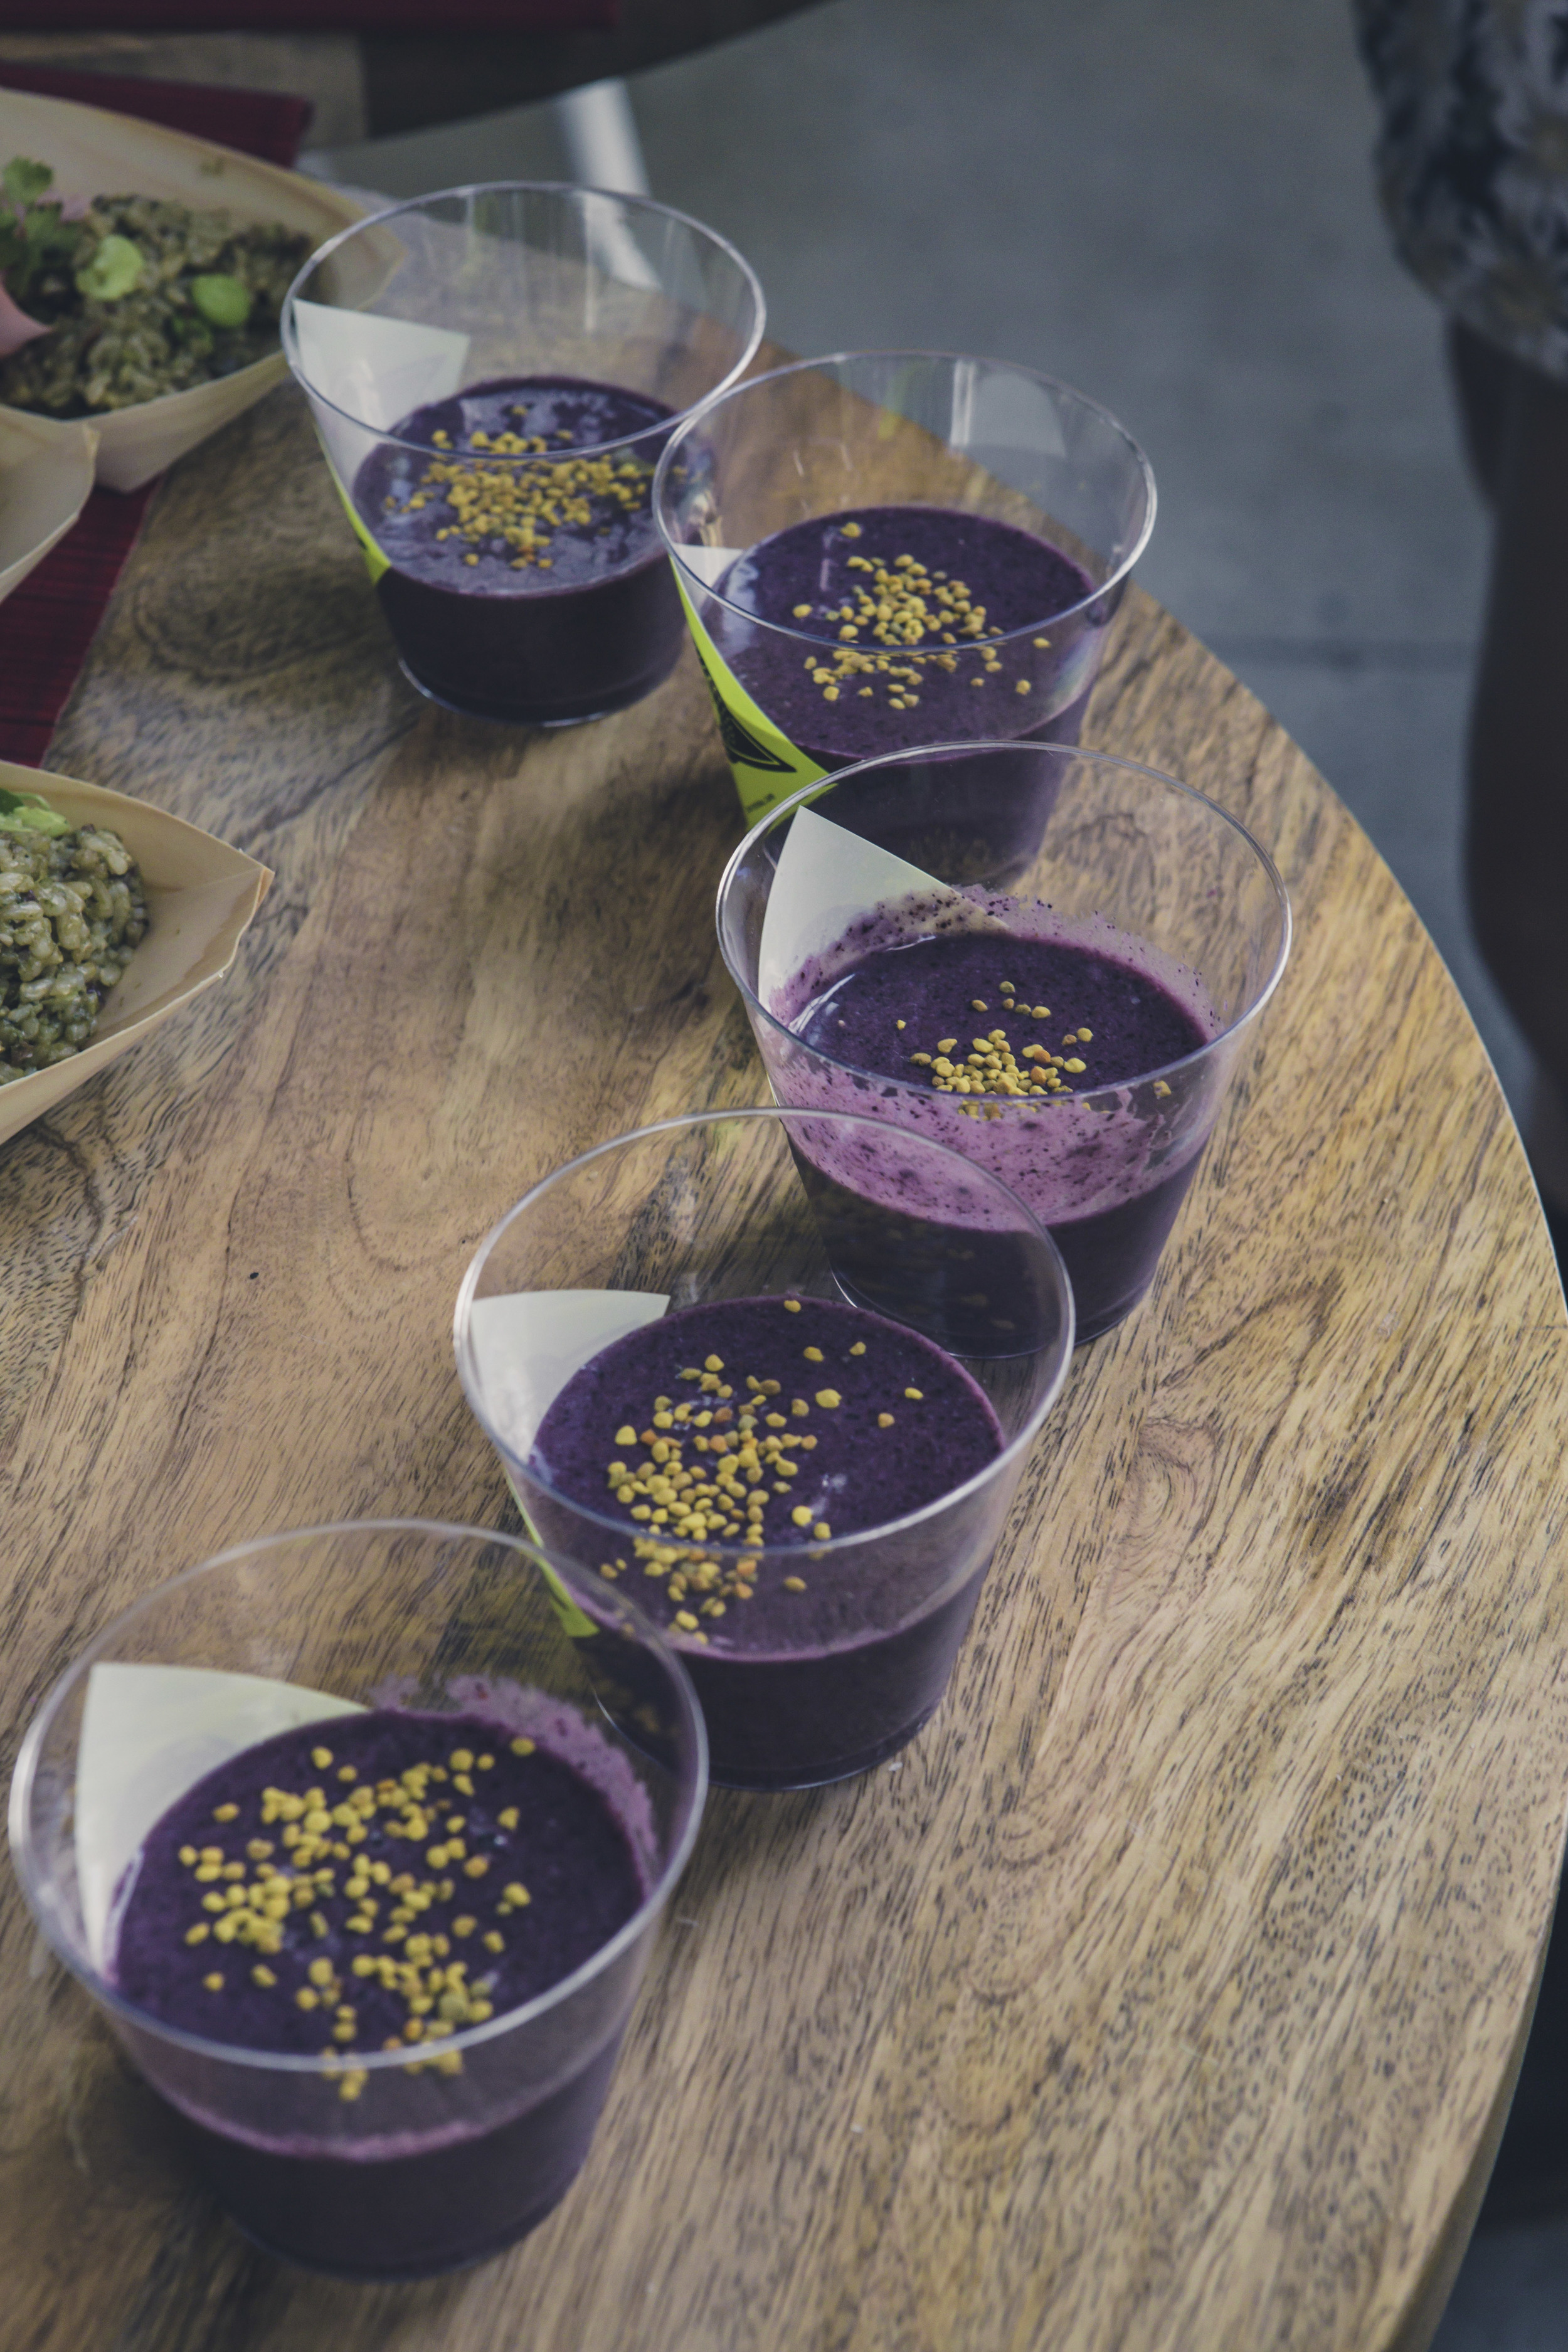 Football Cafe's  Dr. Socrates smoothie: Avocado, raw coconut water, blueberries, coconut oil, sprouted pumpkin seeds,raw honey, and bee pollen.